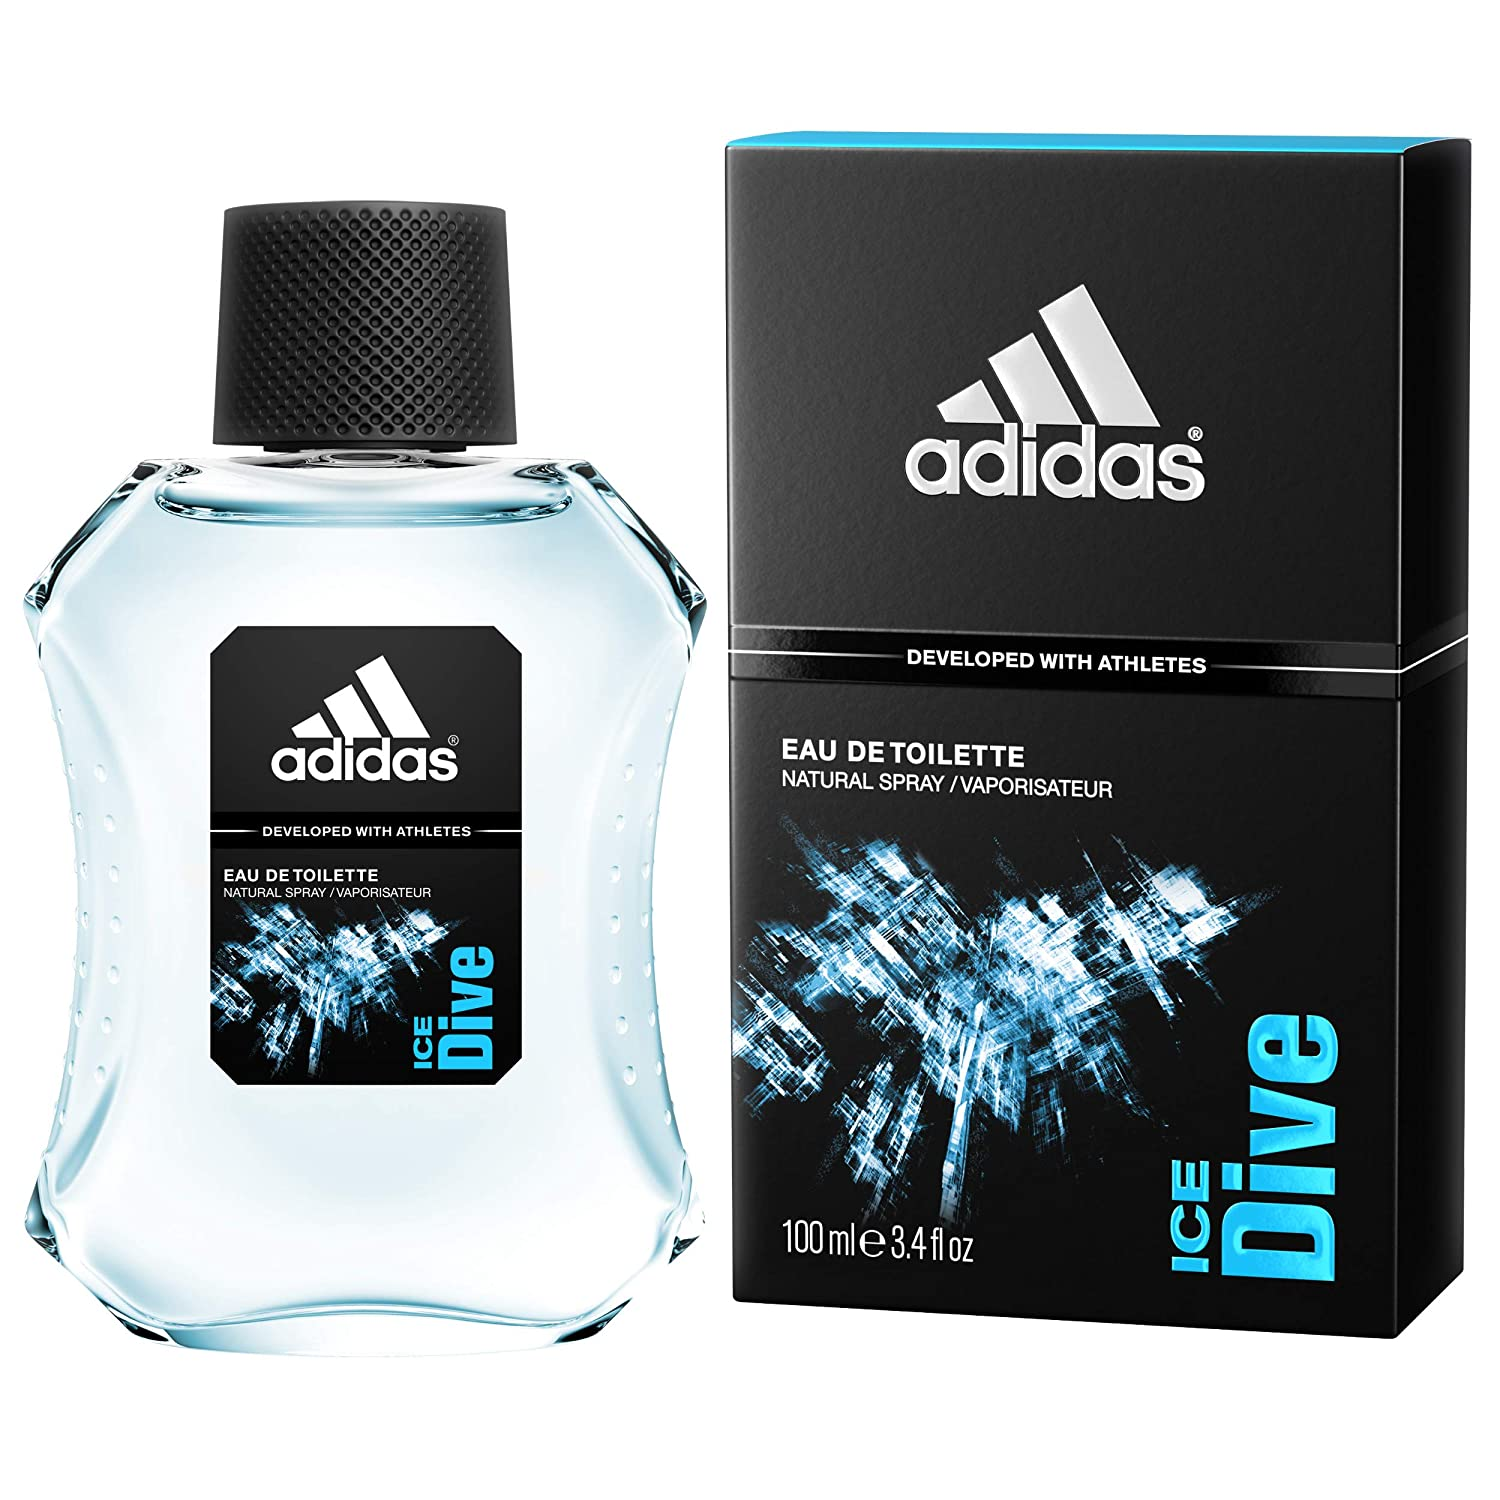 detailing 72f78 c0b3c Buy Adidas Ice Dive Eau De Toilette For Men, 100ml Online at Low Prices in  India - Amazon.in